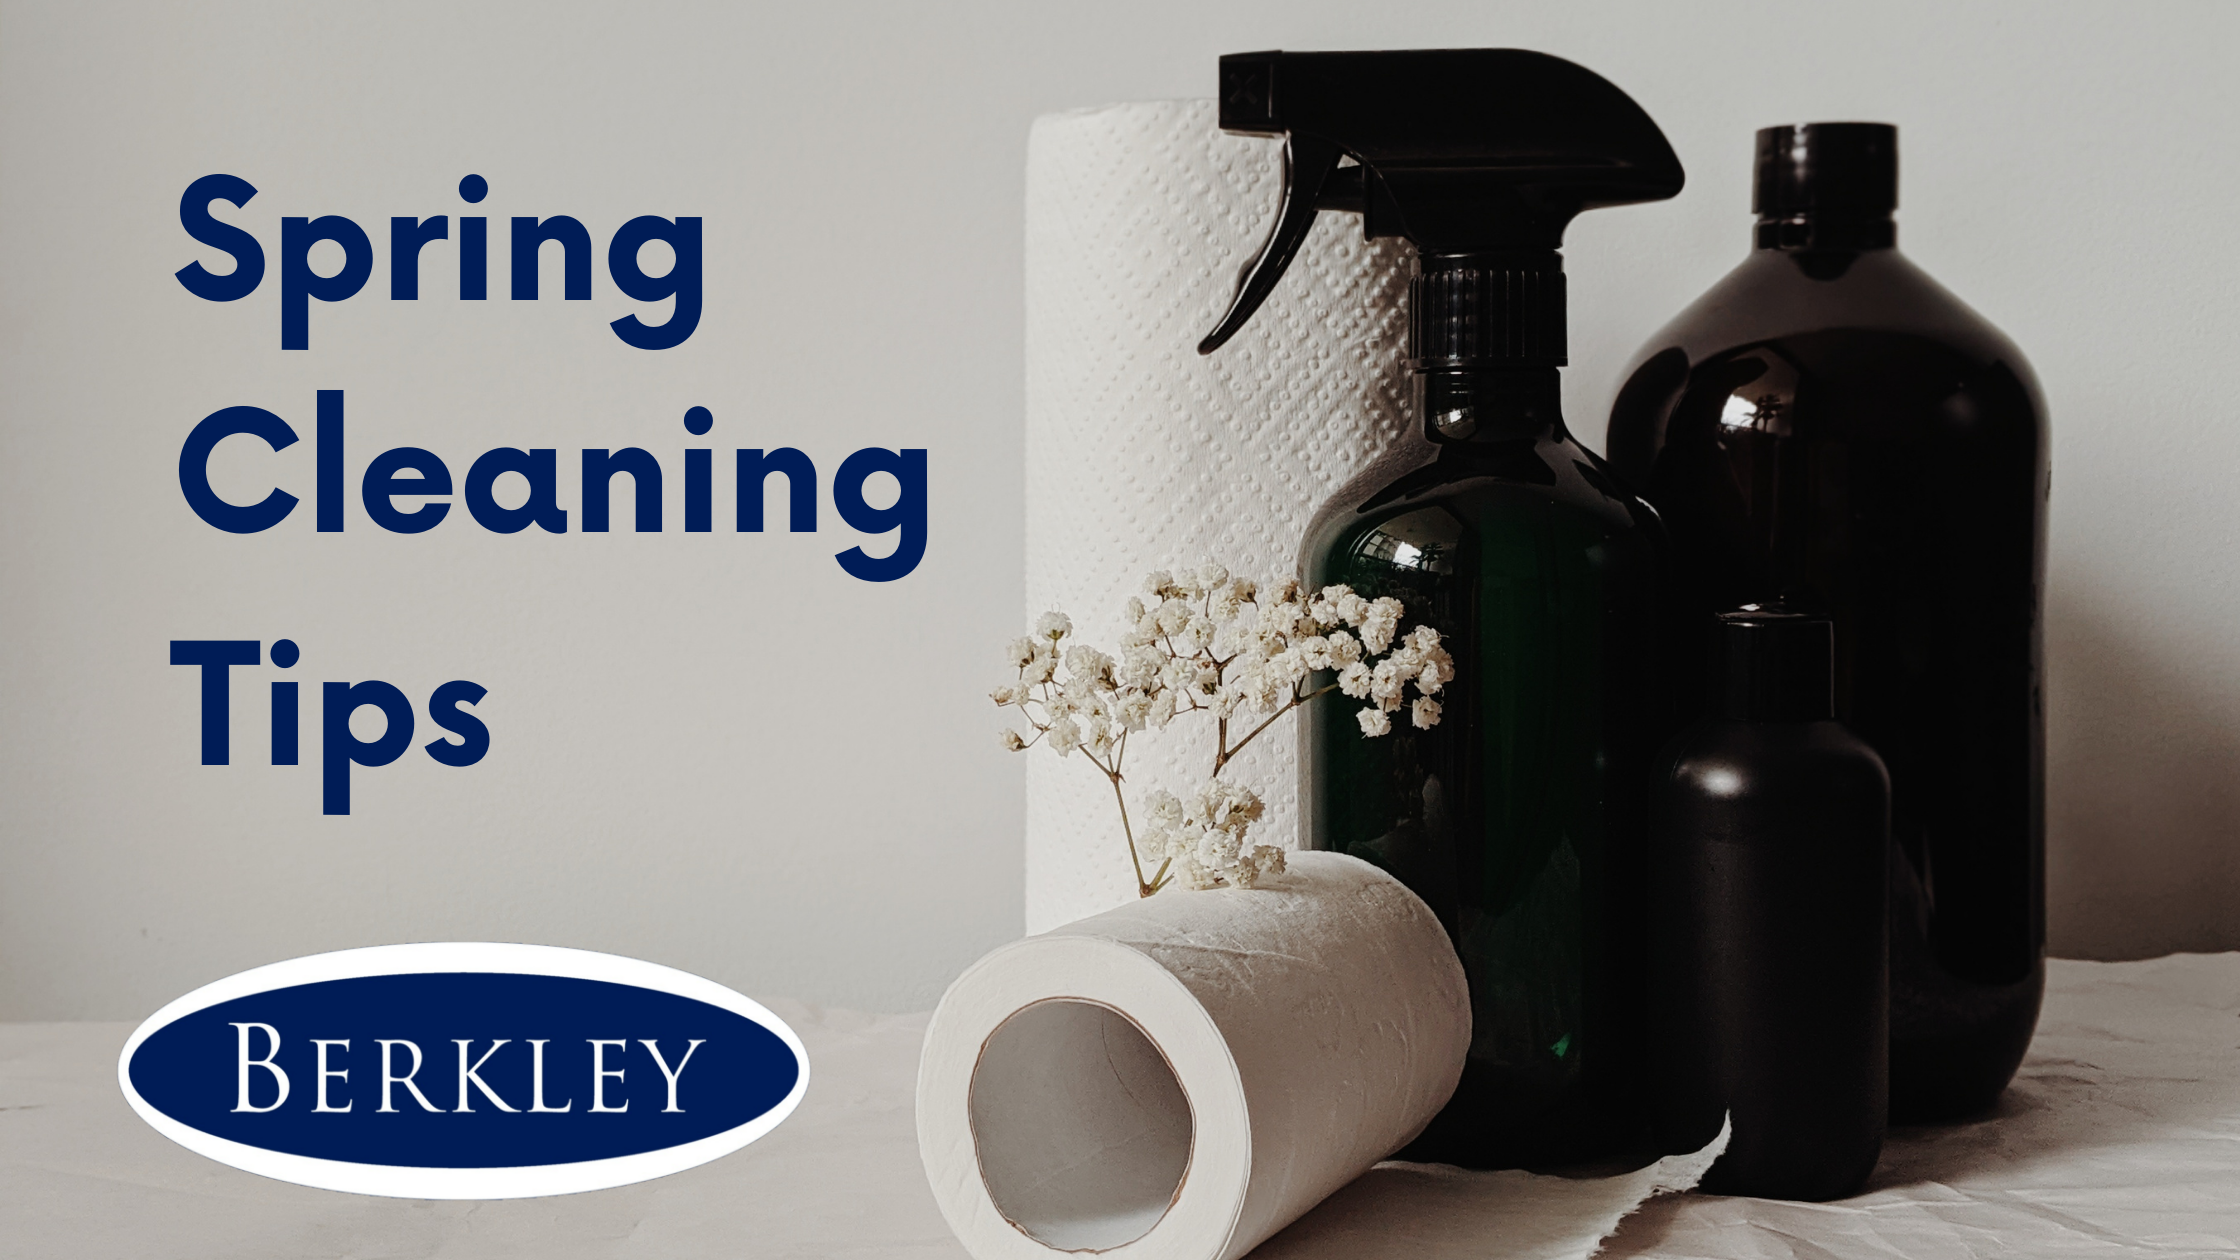 Berkley's Spring Cleaning tips this Easter